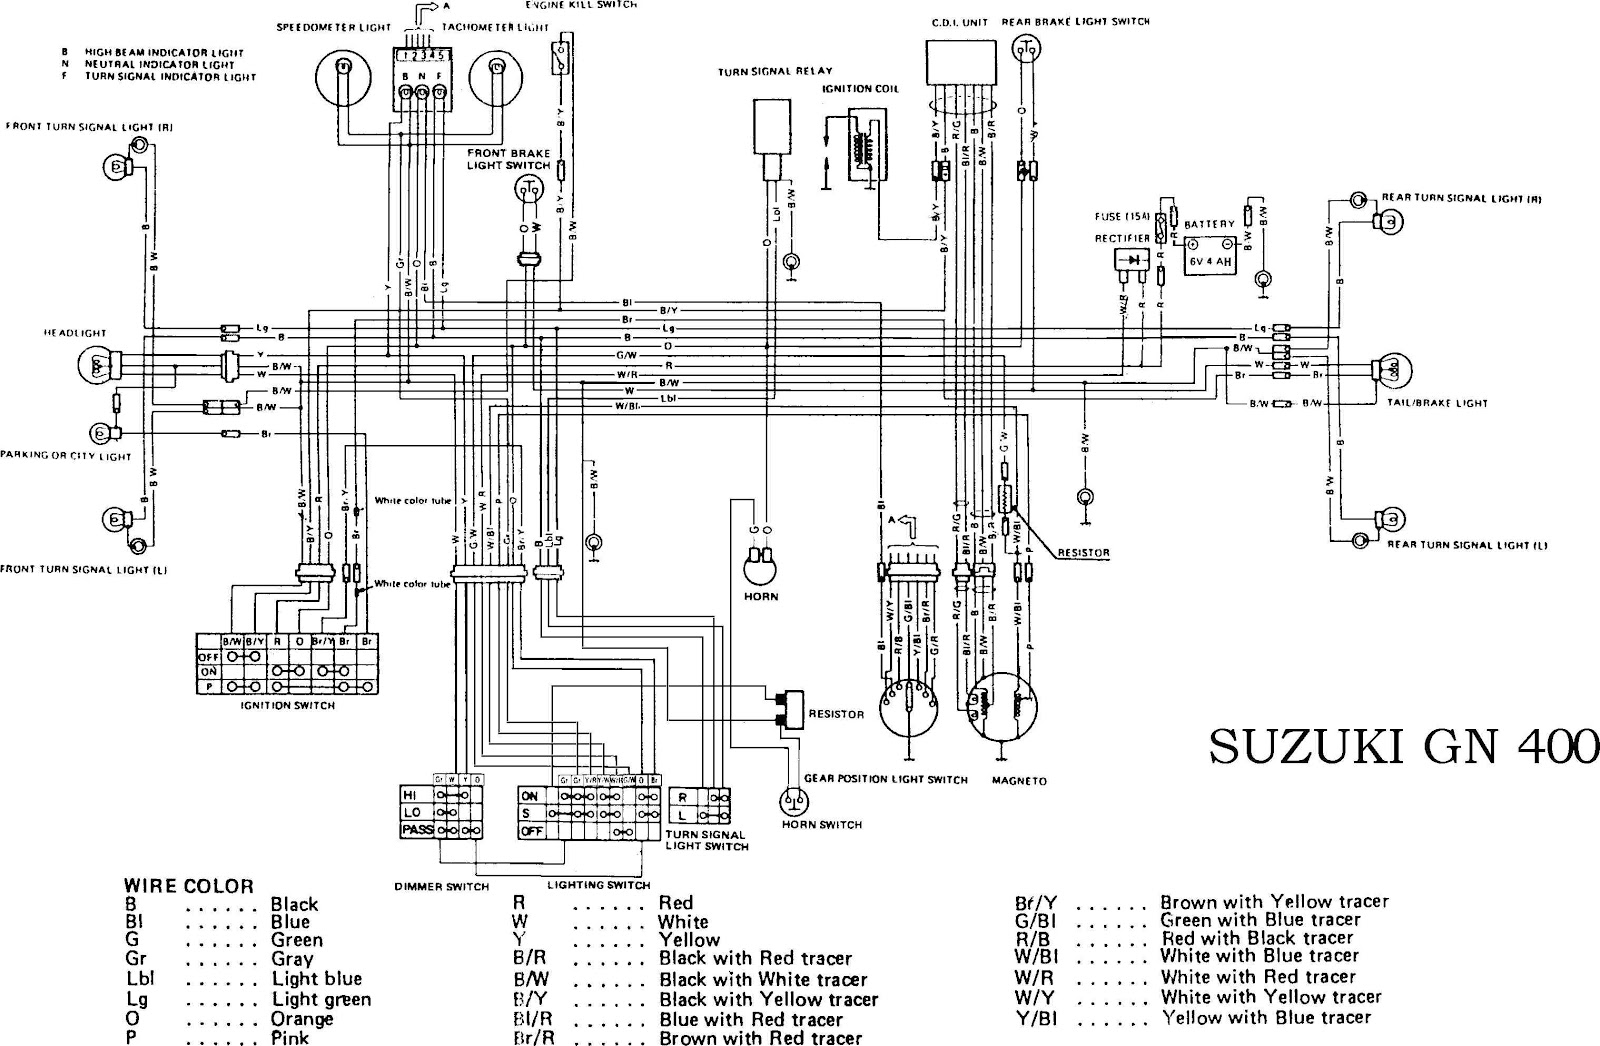 Suzuki Gsx R600 Srad Motorcycle 1998 as well Ktm Lc4 640 Engine Diagram furthermore Radlager Satz Mit Simmerringen 25 1402 Fuer Beta Husaberg Ktm as well Remblokken Voor Achter Braking Ktm 65sx 85sx 105sx also Keihin CR Special 26 29 31 33 35 37 39 Roundslide Racing Carburetor Parts Diagram. on ktm 525 sx